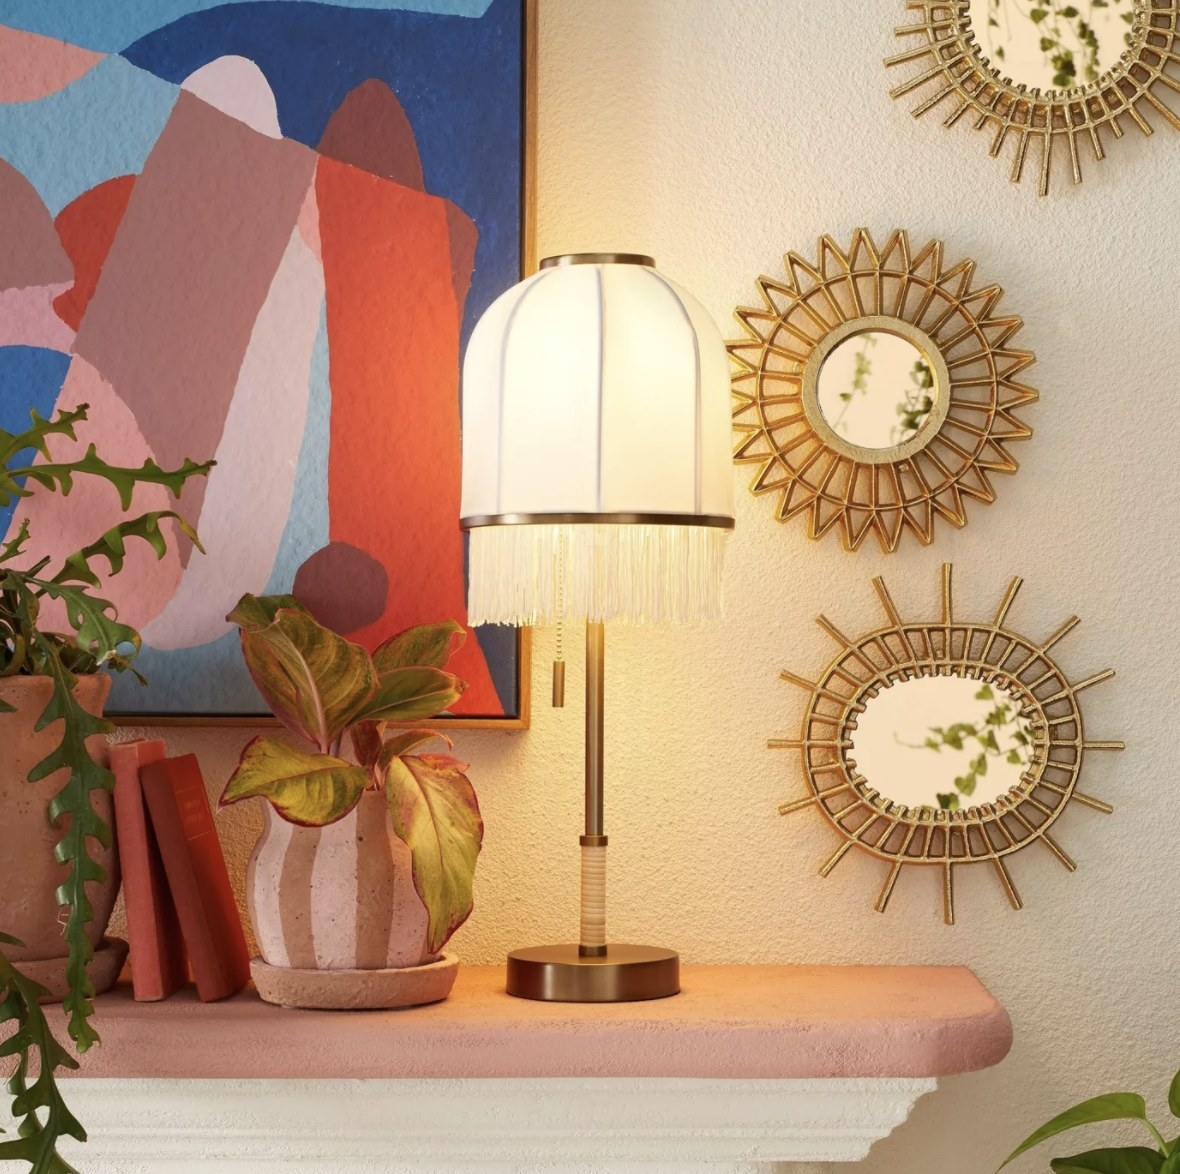 The cream lamp has a gold-tone base and fringe from the lampshade